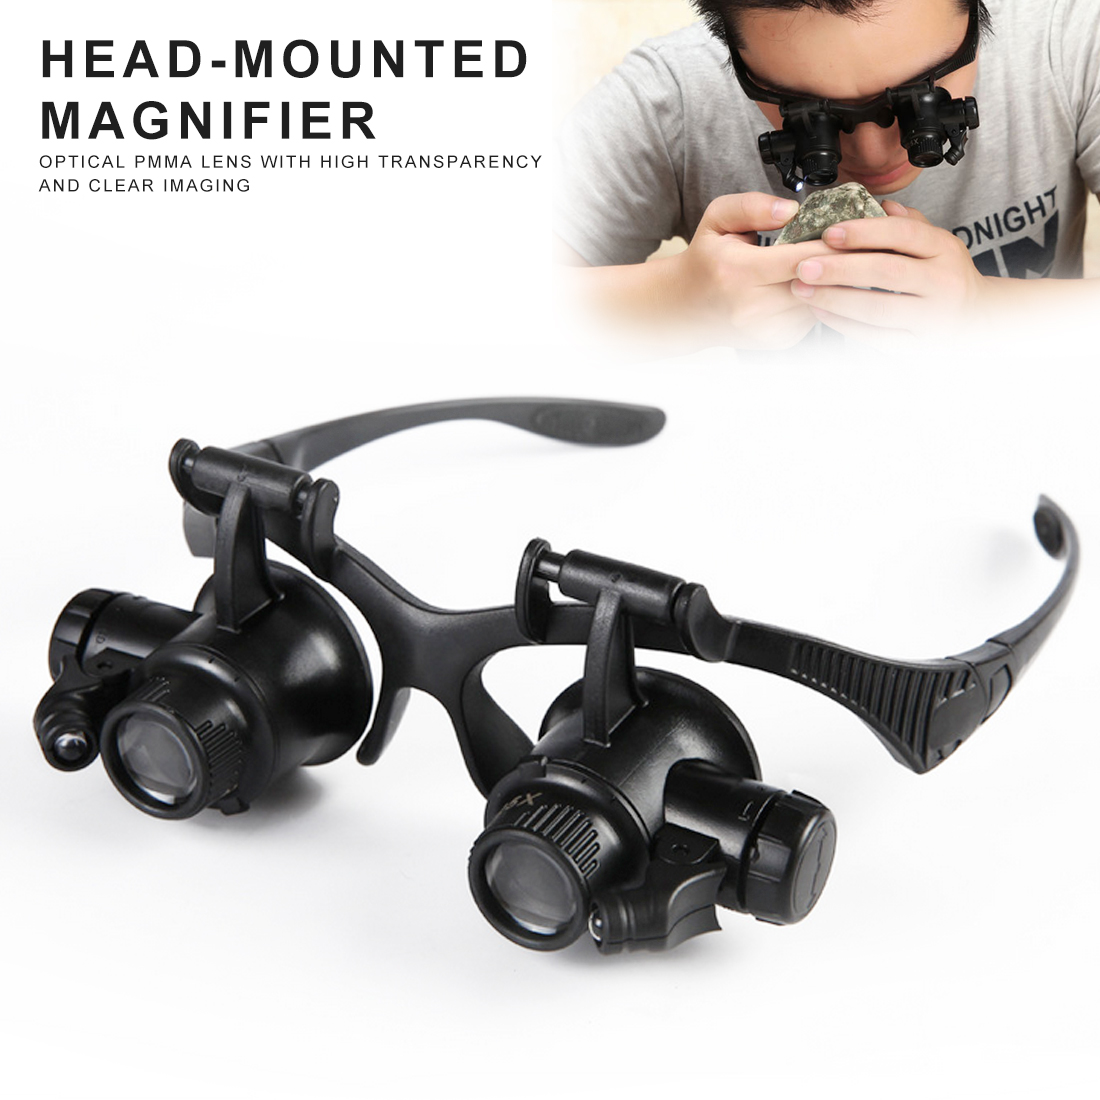 LED Head-mounted Magnifying 10X 15X 20X 25X Eye Jewelry Watch Repair Magnifier Glasses With 2 LED Lights Magnifying Glass Lupa